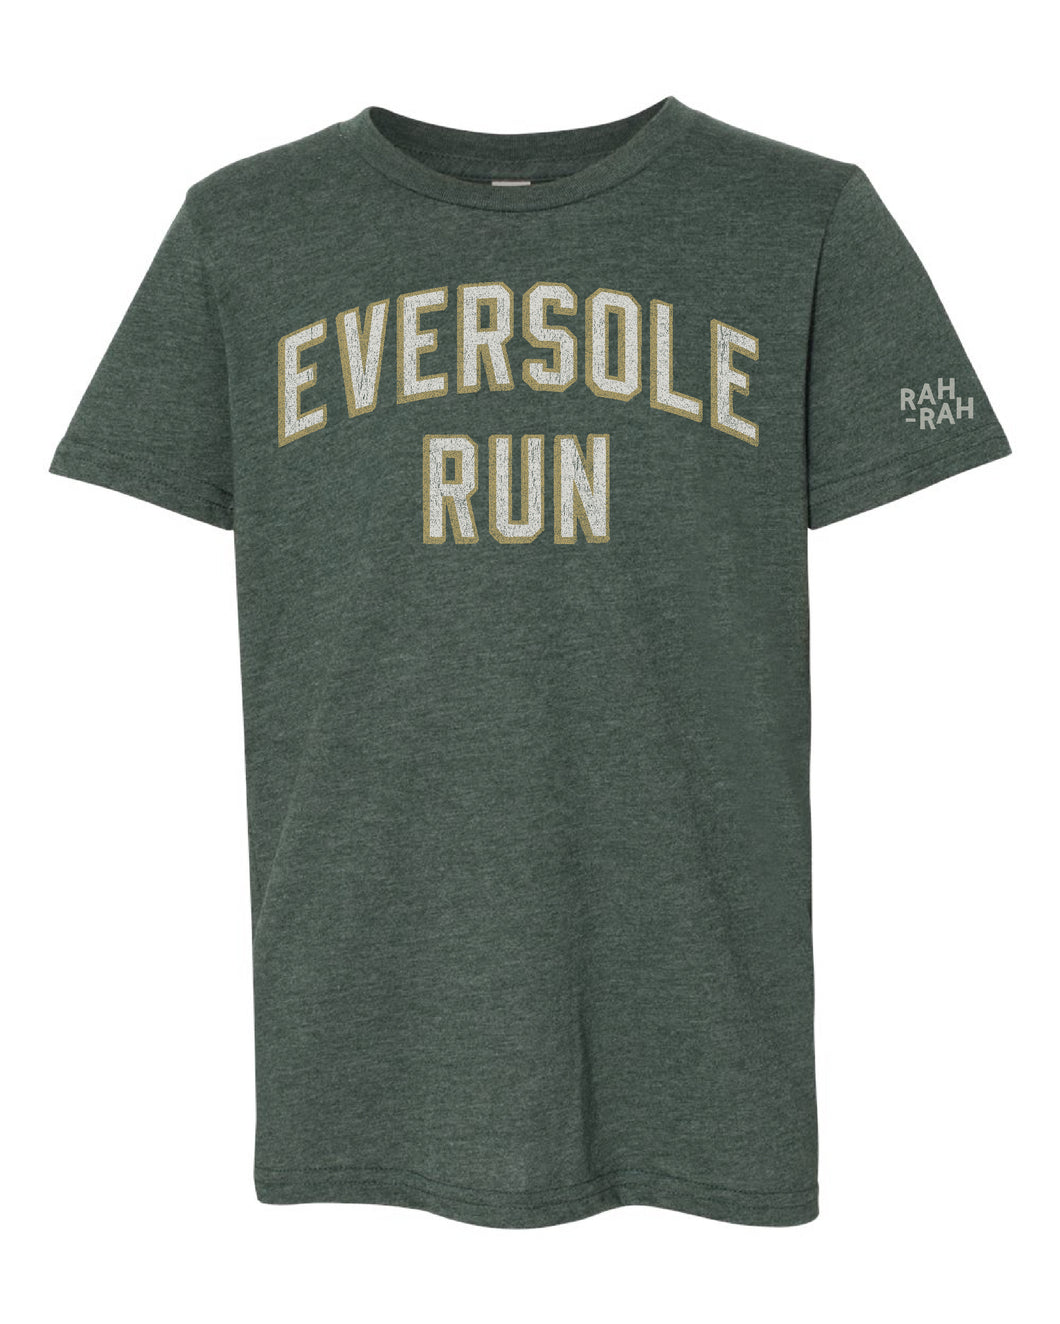 Eversole Run Youth Green Tee